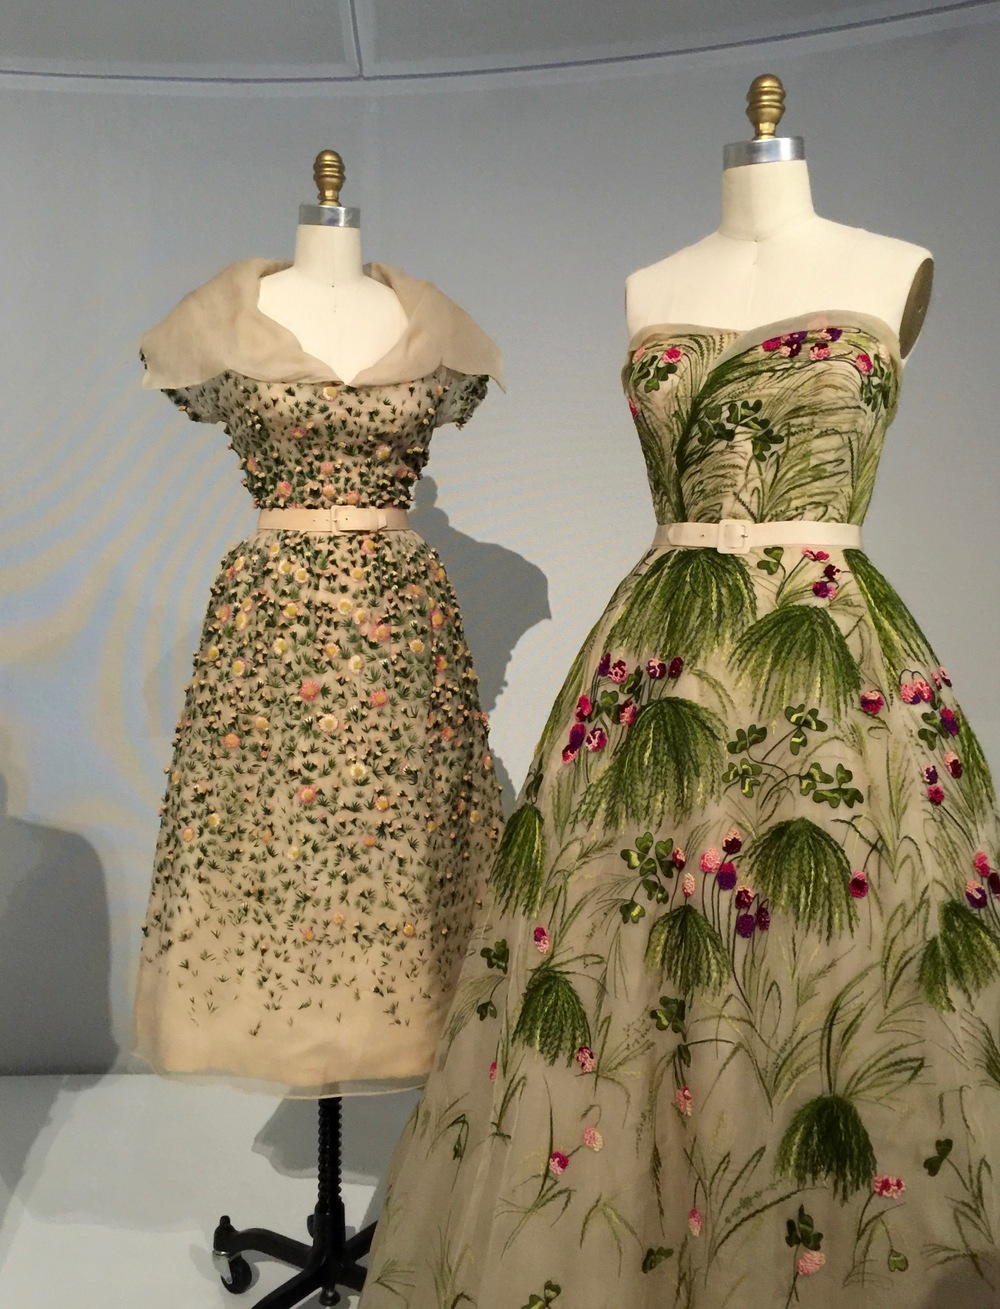 "(l) HOUSE OF DIOR, Christian Dior ""VILMIRON"" DRESS, Spring/Summer 1952, haute couture  Machine-sewn, hand-finished white silk organza, hand-embroidered with artificial flowers in green, pin, yellow, and white silk floss, hand-painted cotton, silk twist  (r) HOUSE OF DIOR, Christian Dior ""MAY"" DRESS, Spring/Summer 1953, haute couture  Machine-sewn, hand-finished white silk organza and net, hand-embroidered with artificial flowers, clover, and grass in green, pink, and purple silk floss"